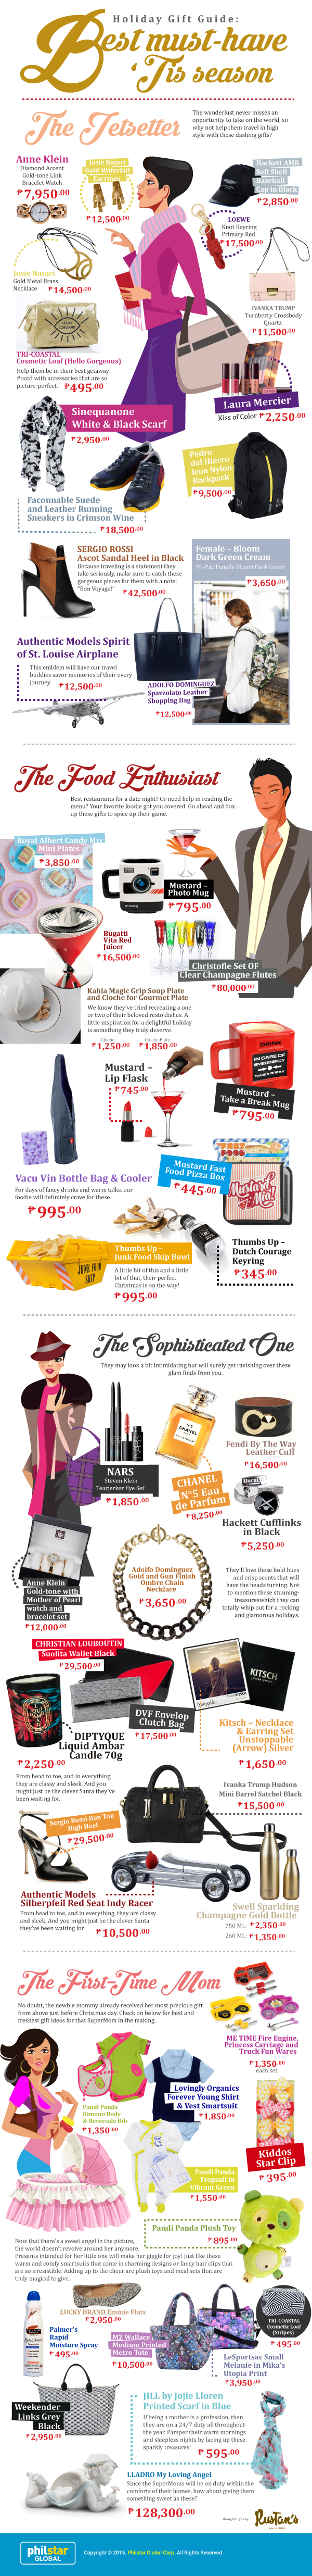 Rustan's holiday infographic